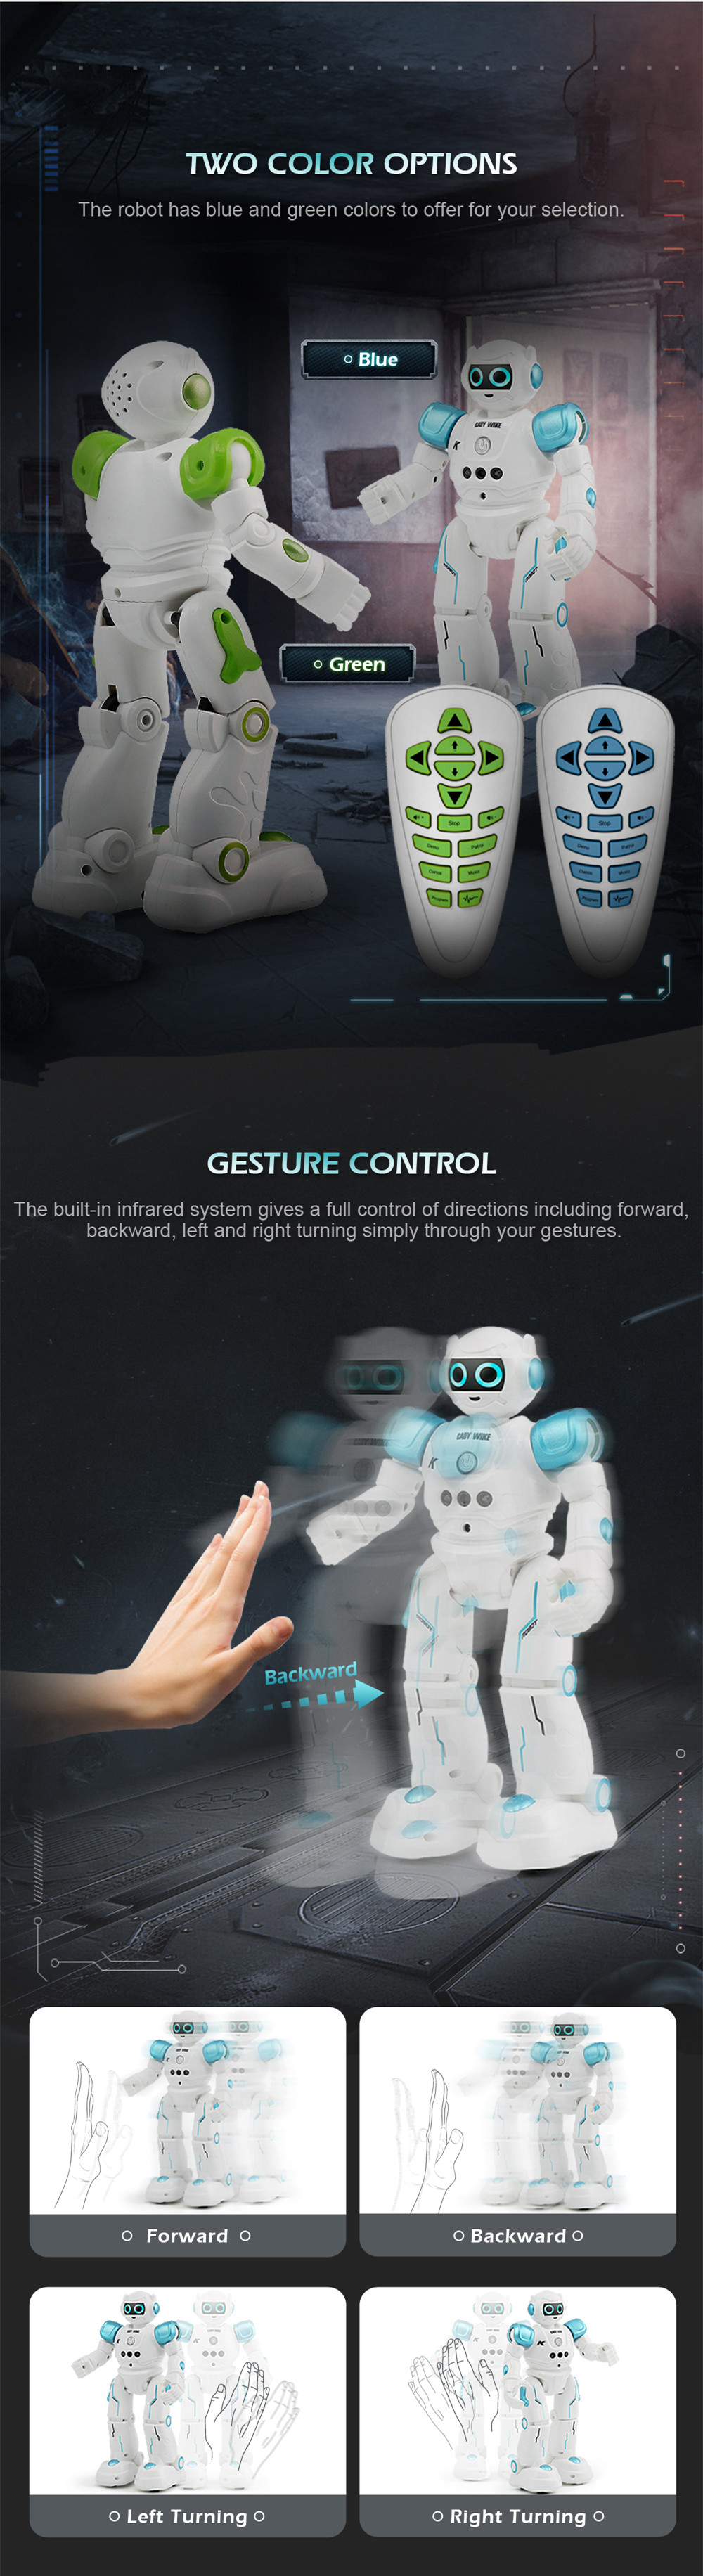 JJRC R11 CADY WIKE Smart RC Robot Gesture Sensing Touch Intelligent Programming Dancing Patrol Toy